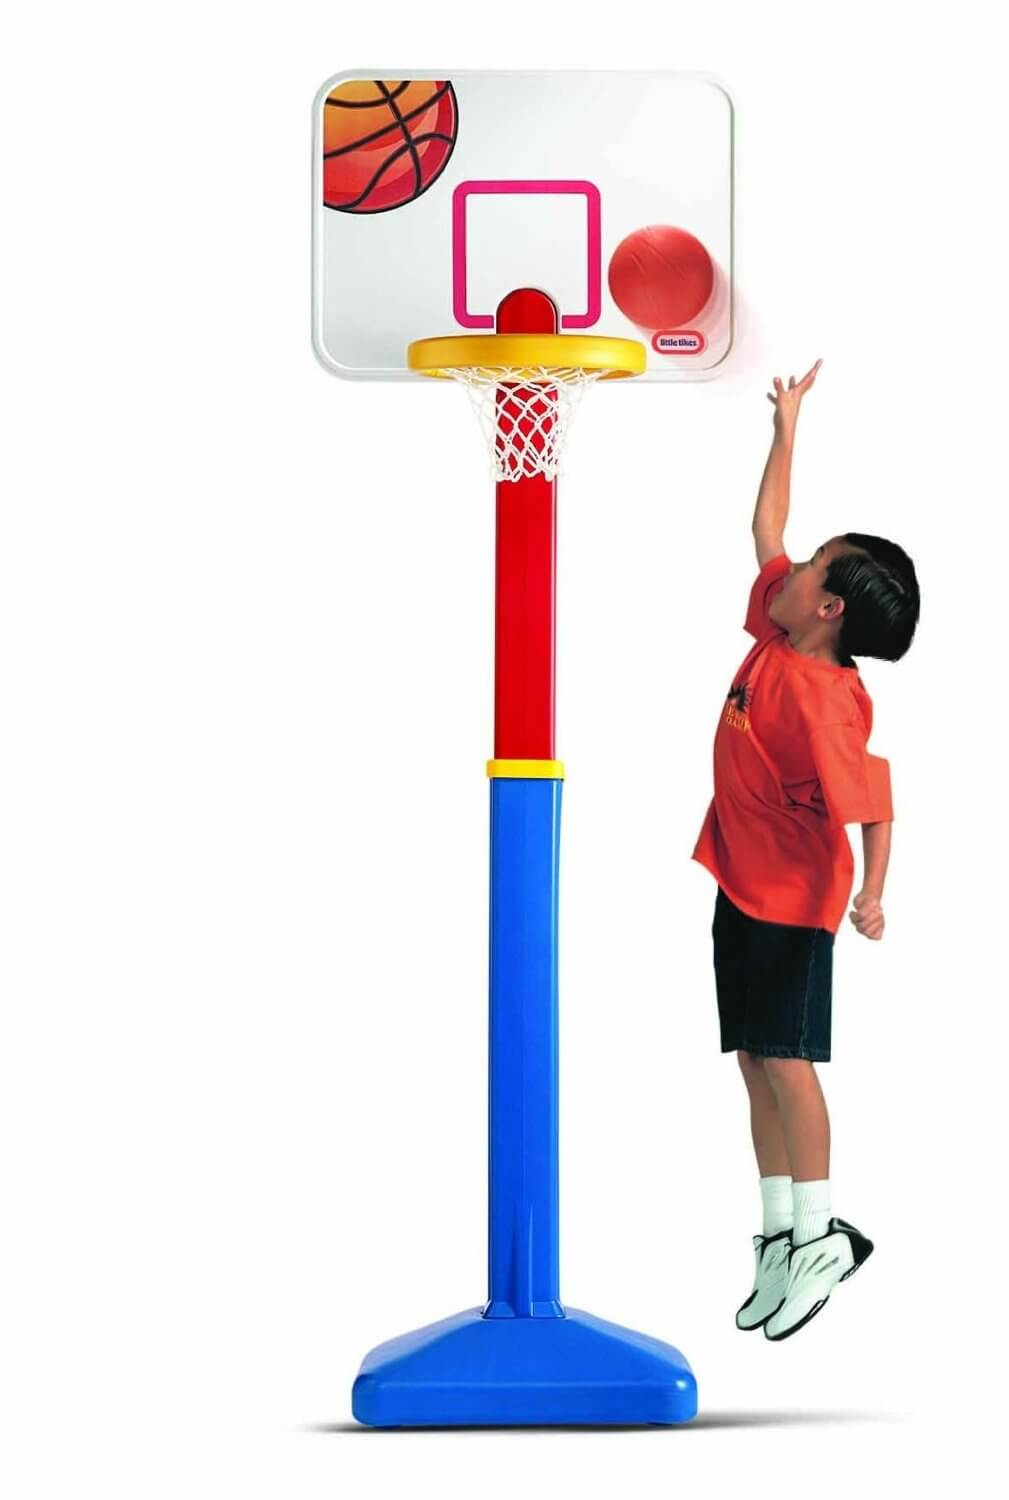 basketball hoops for kids - DriverLayer Search Engine